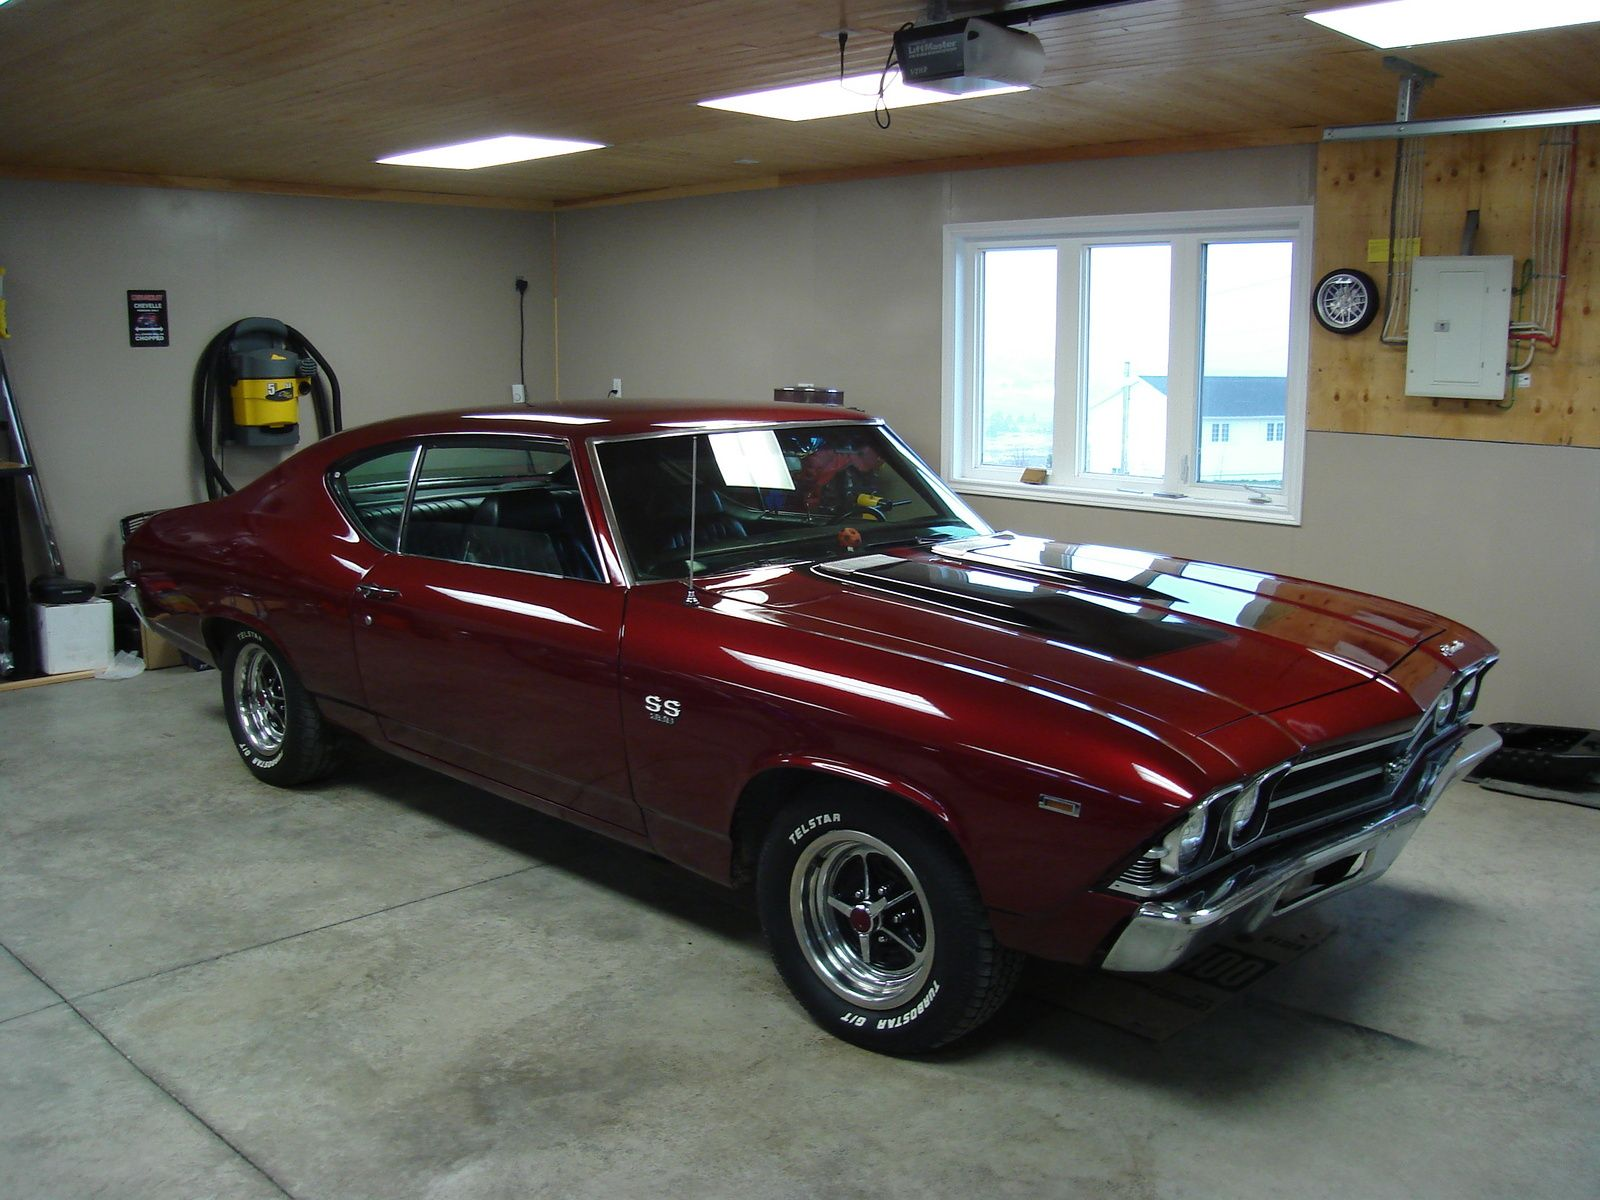 69 chevelle not quite as nice as the purple one i owned but still a great car rides pinterest chevelle ss 1969 chevelle and chevrolet chevelle